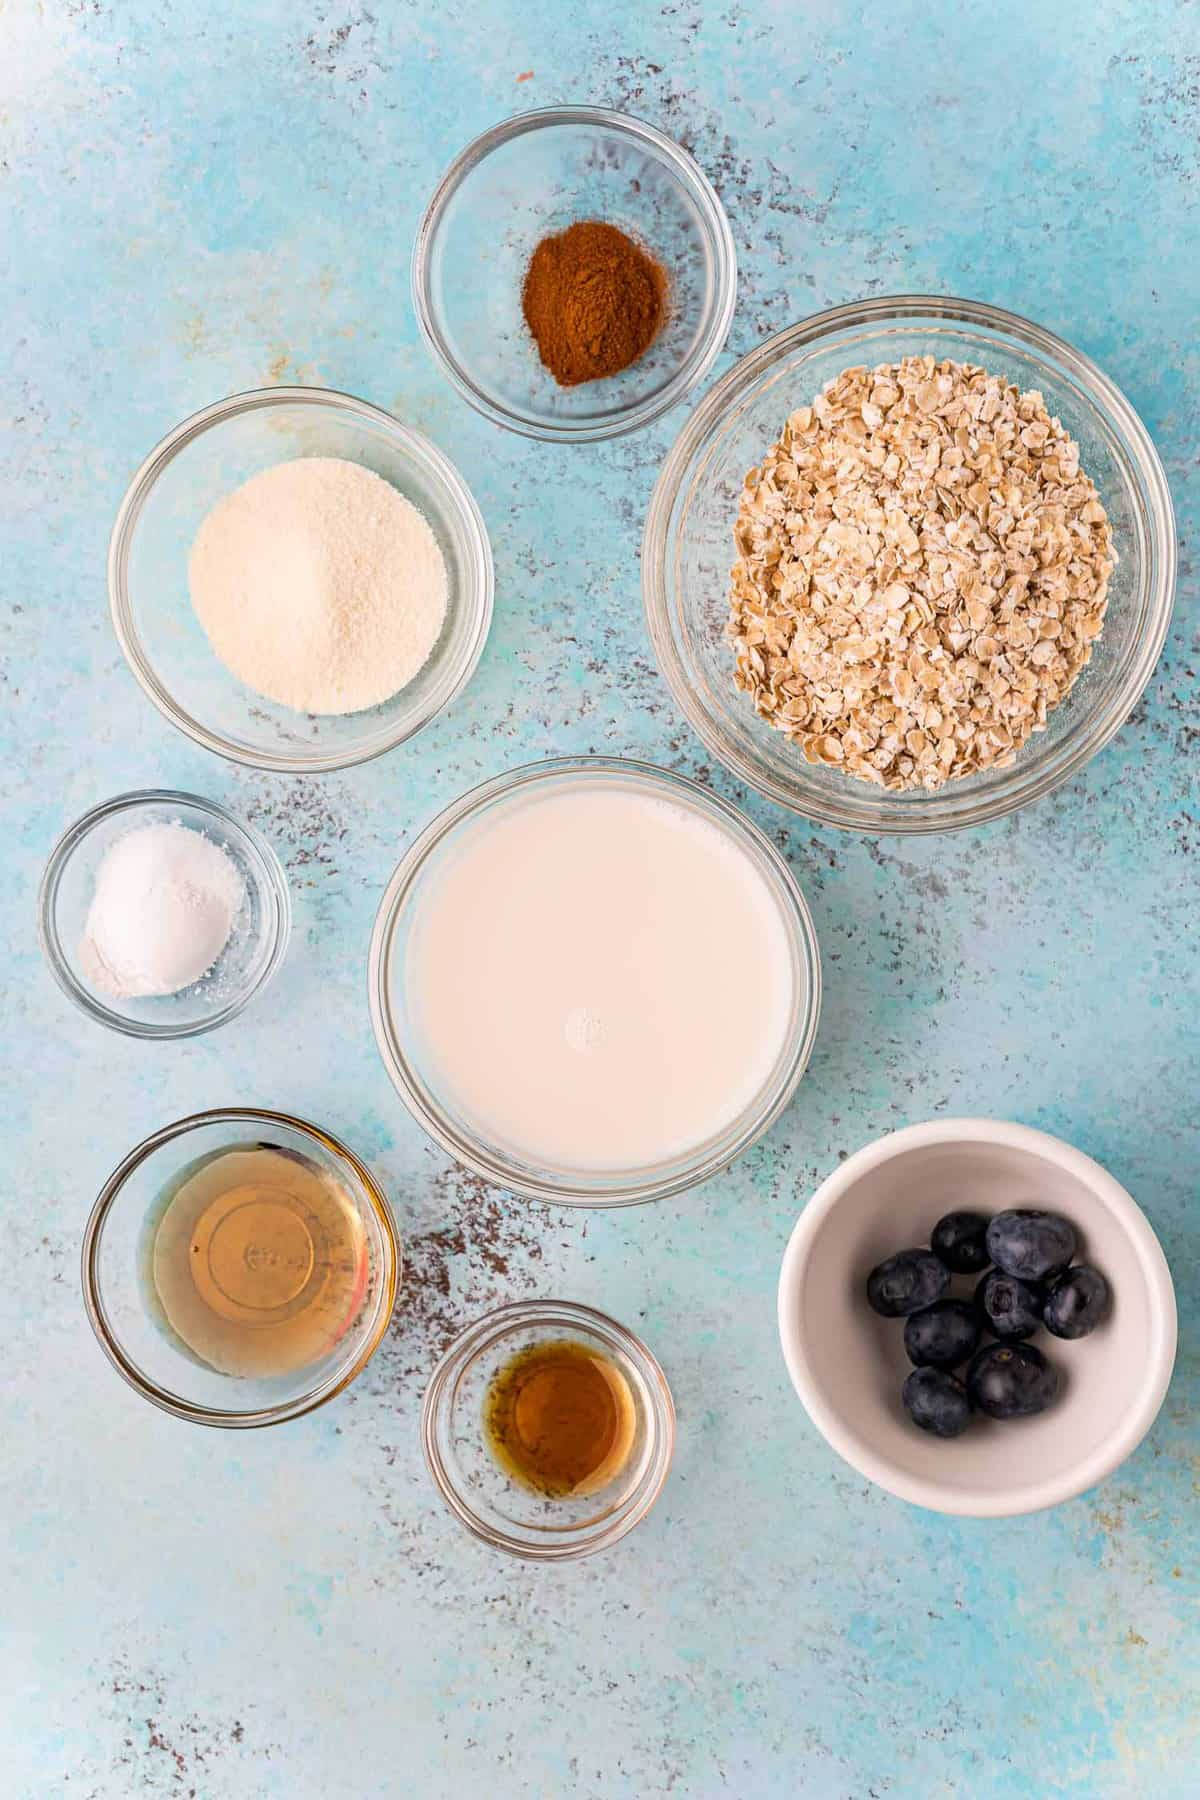 Overhead view of ingredients needed, on a blue background.